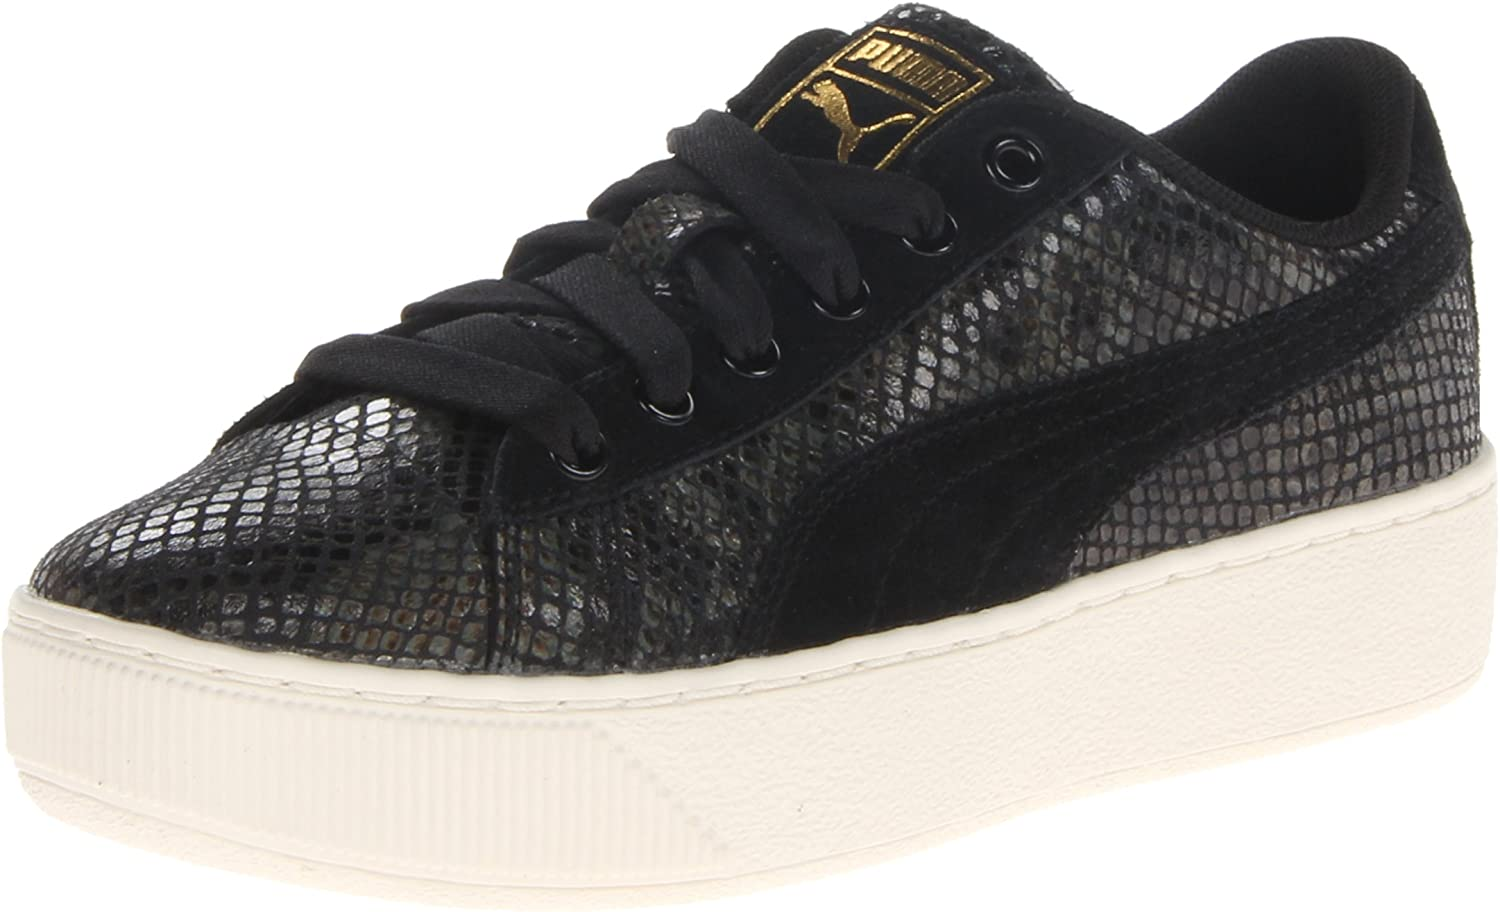 PUMA Women's Classic Extreme Max Department store 79% OFF Sneaker Animal